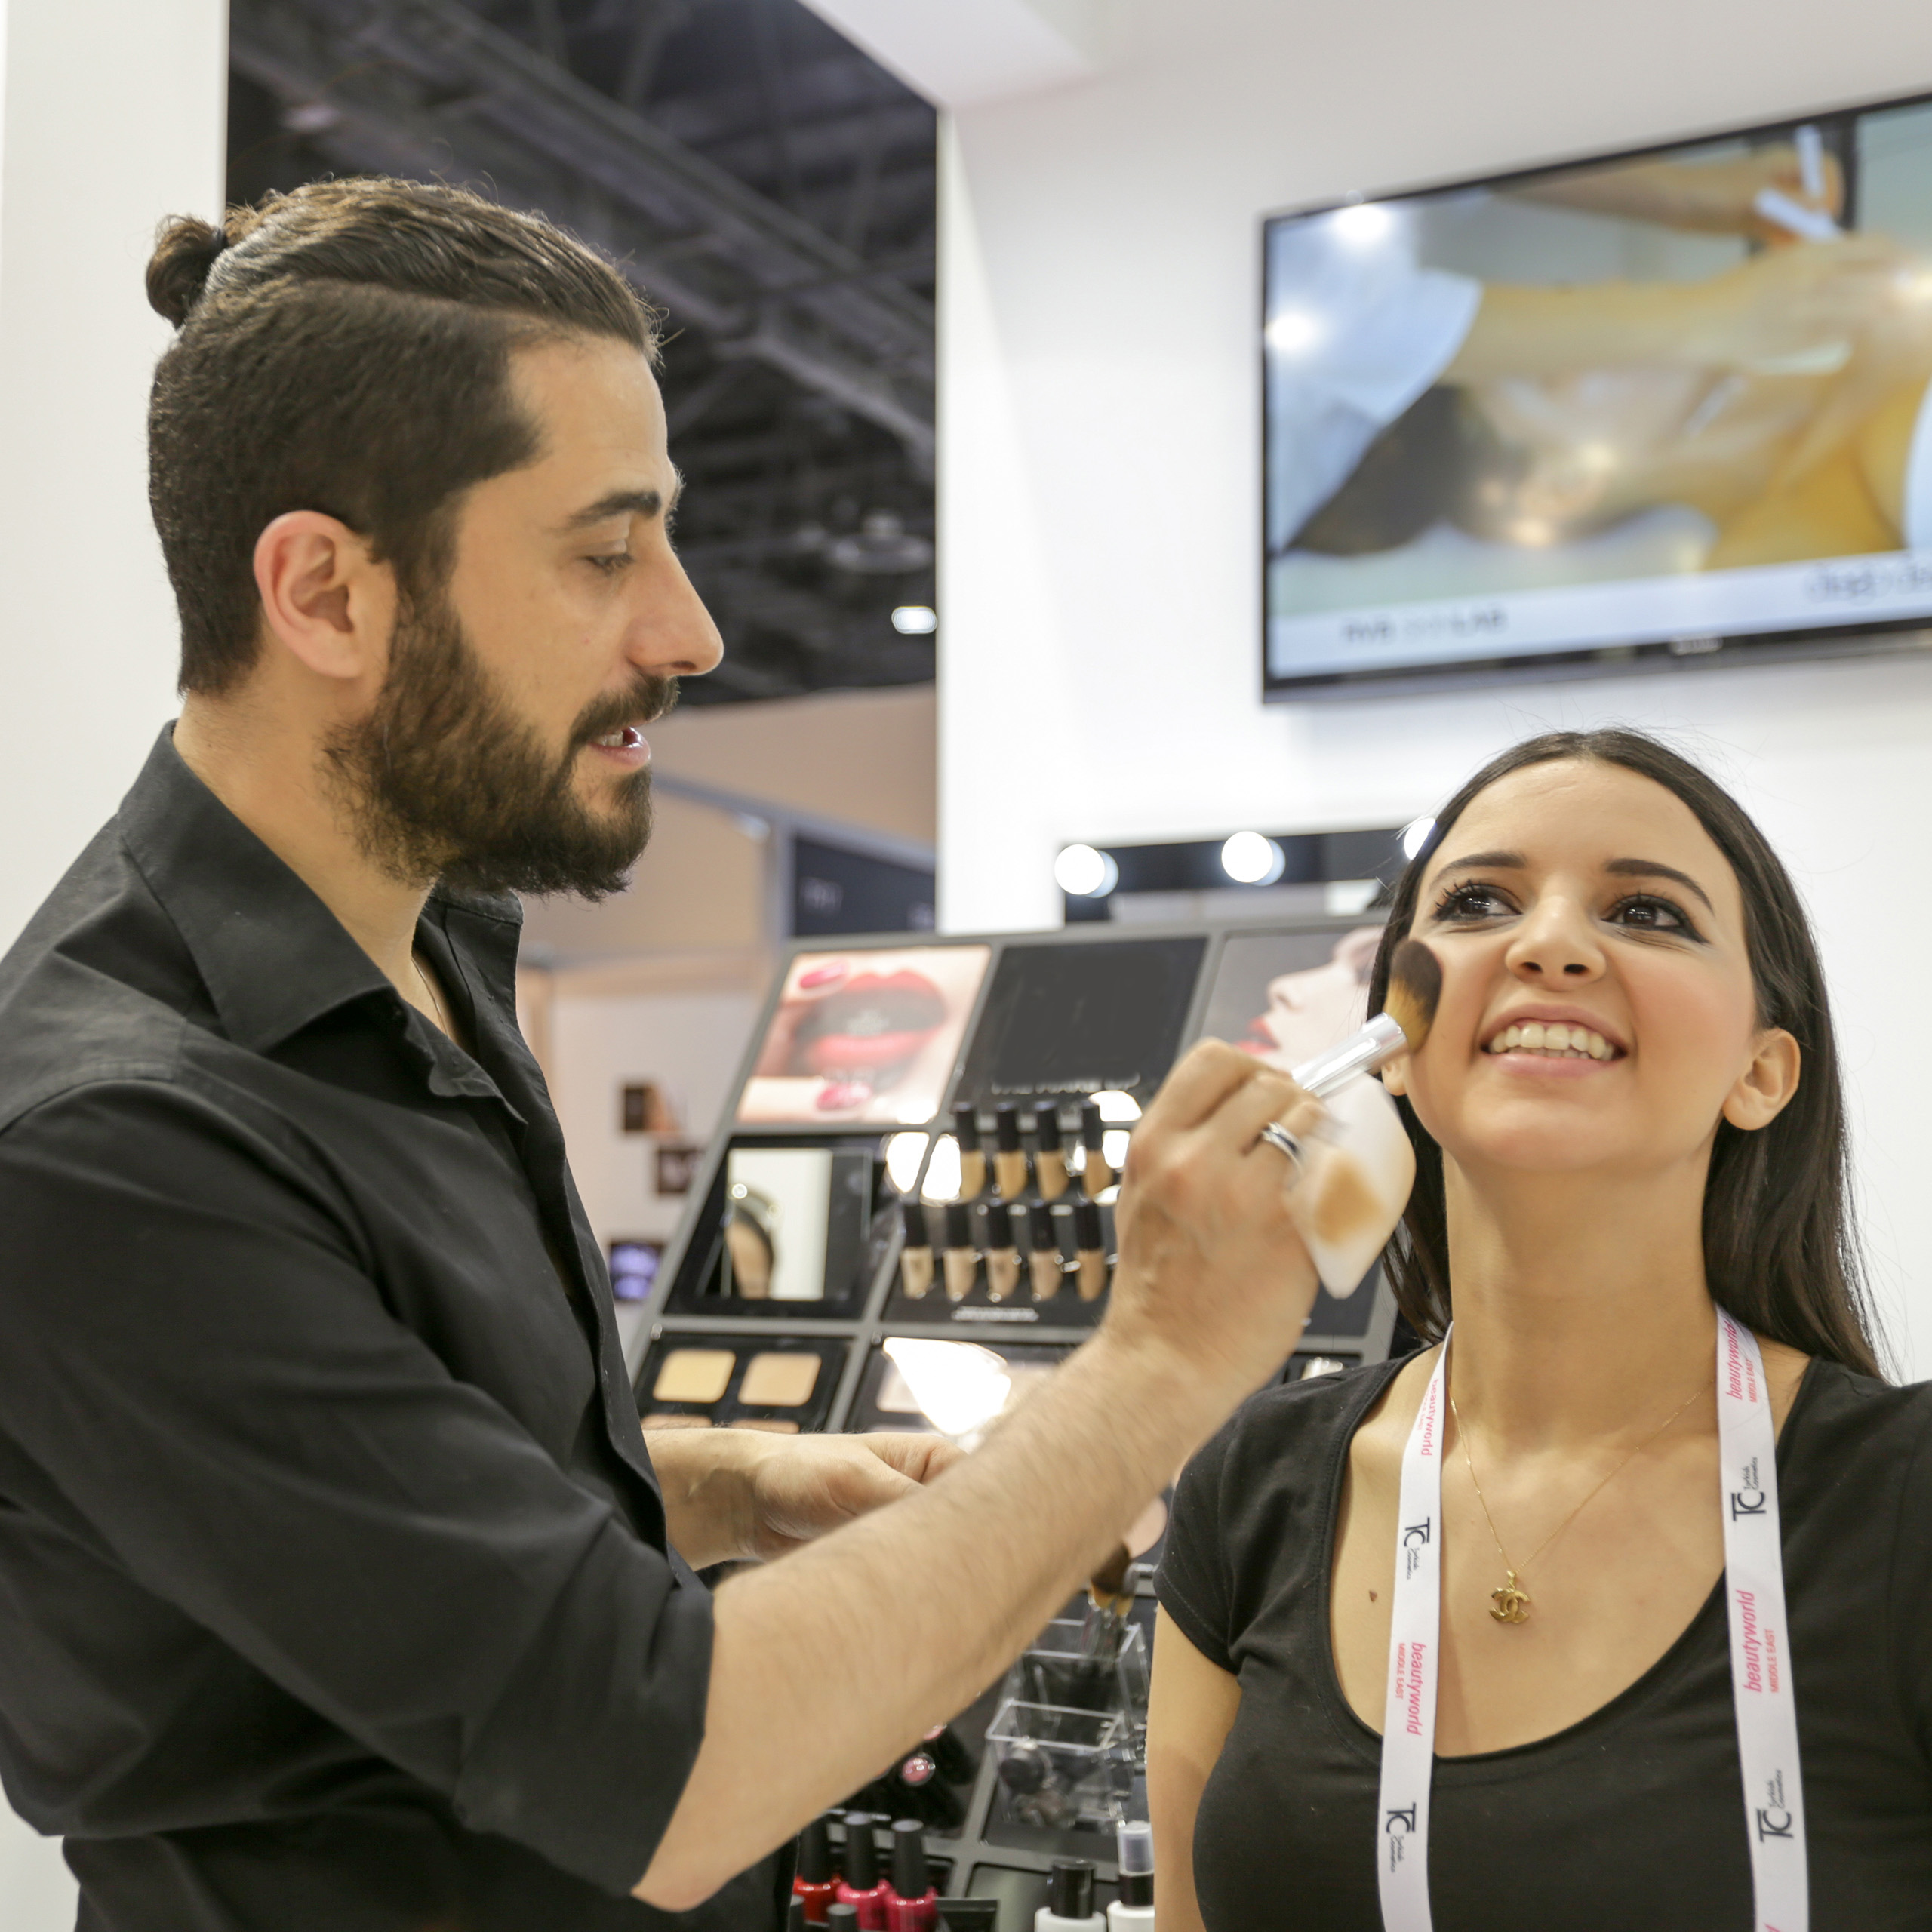 Beautyworld Middle East 2016 comes to spectacular end, attracting 37,553 visitors from 135 countries